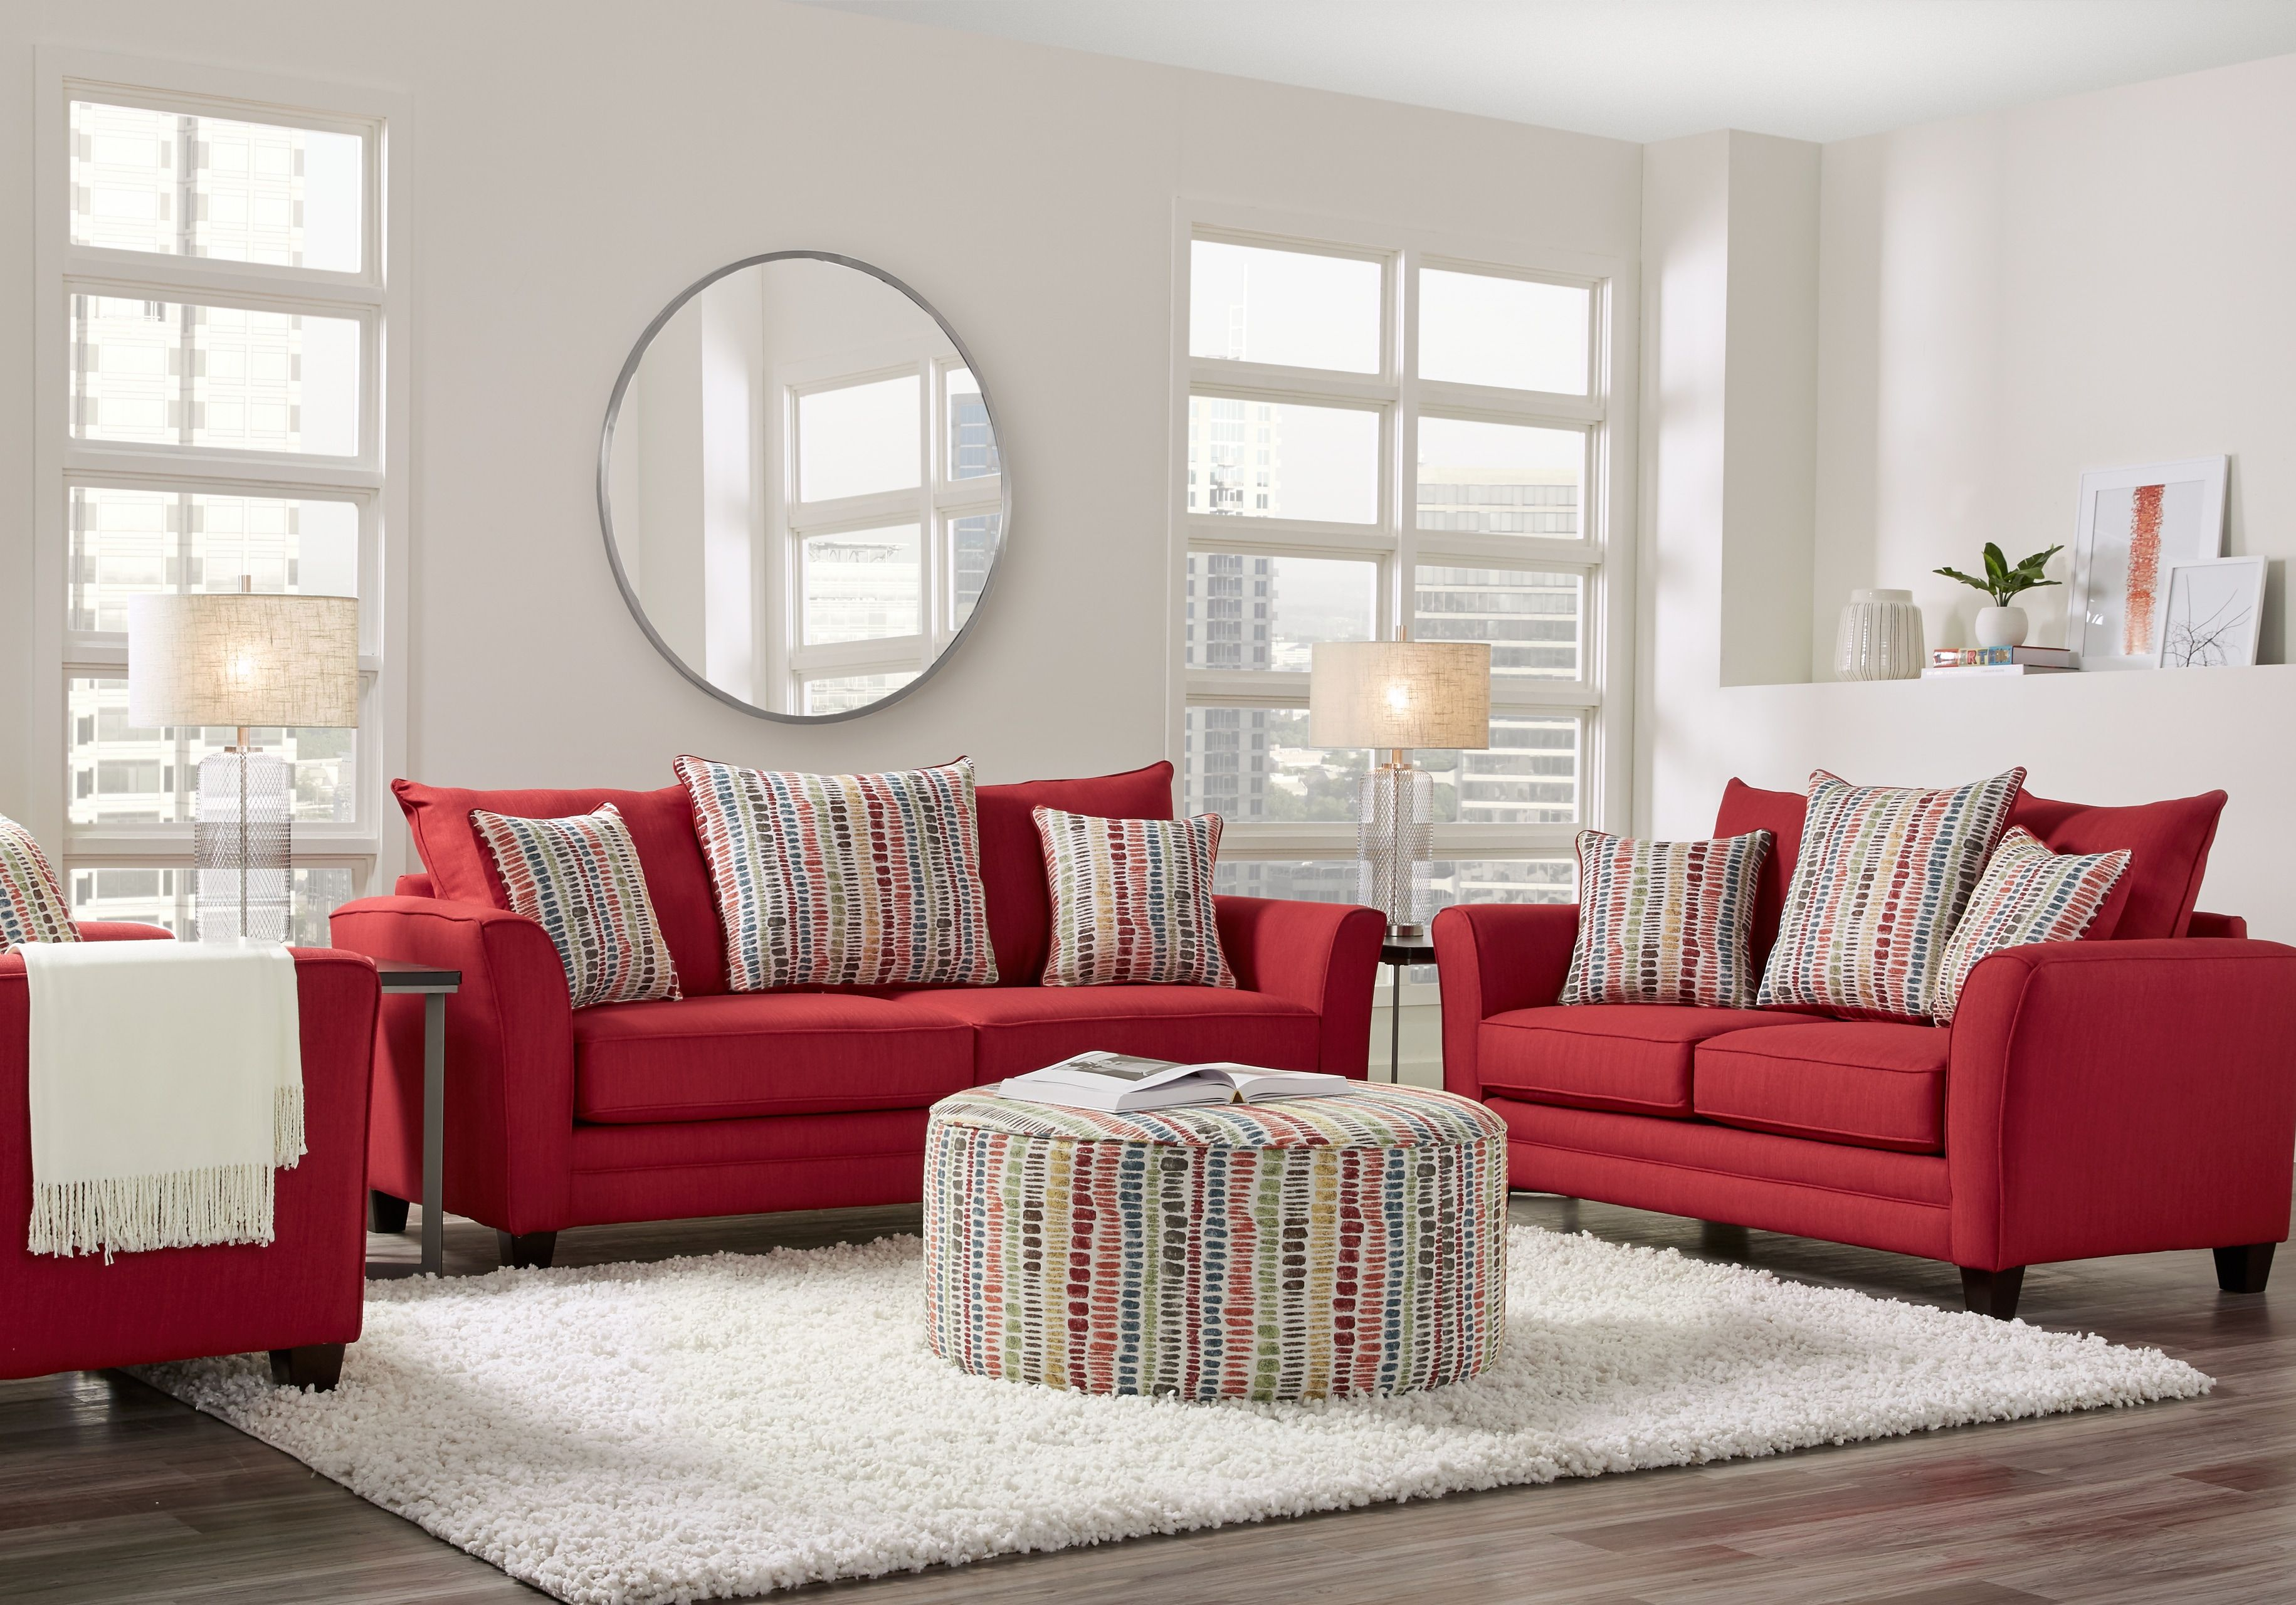 Marlette Red 8 Pc Living Room Red Couch Living Room Red Sofa Living Room Red Leather Couch Living Room